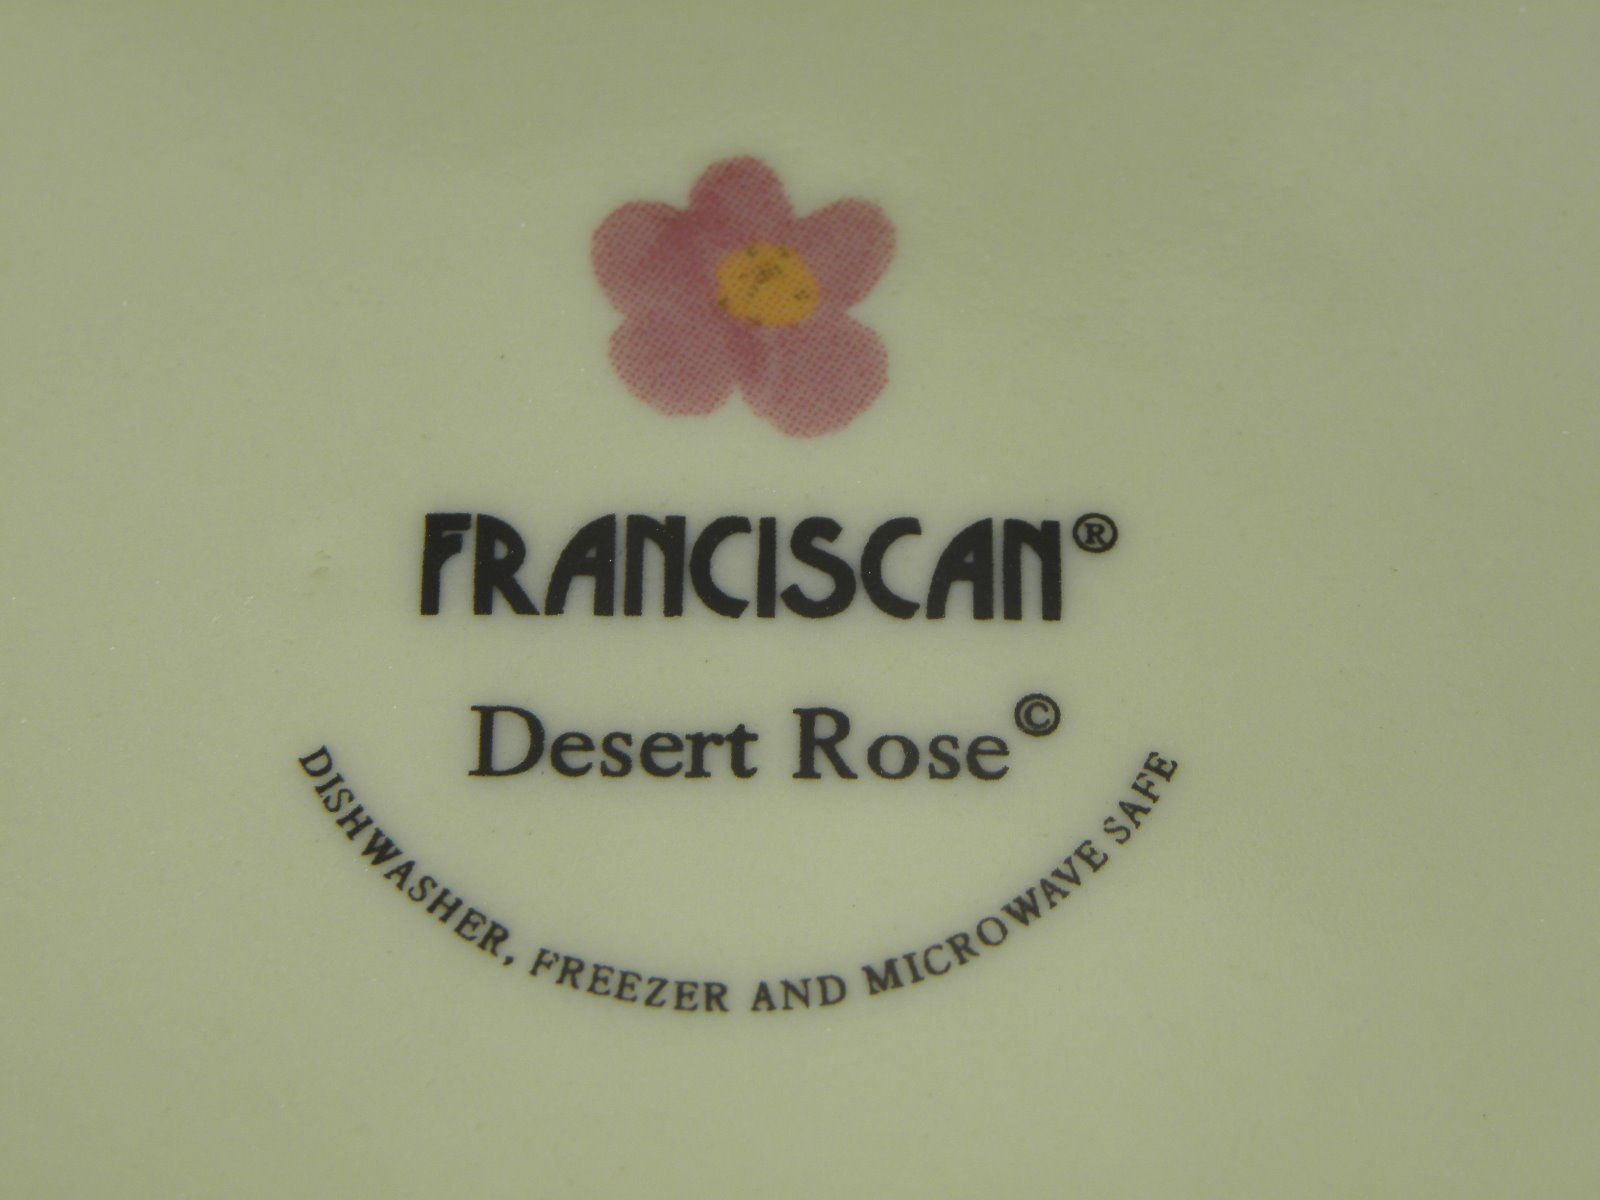 Franciscan Desert Rose Salad Serving Bowls Set of 2 BRAND NEW PRODUCTION